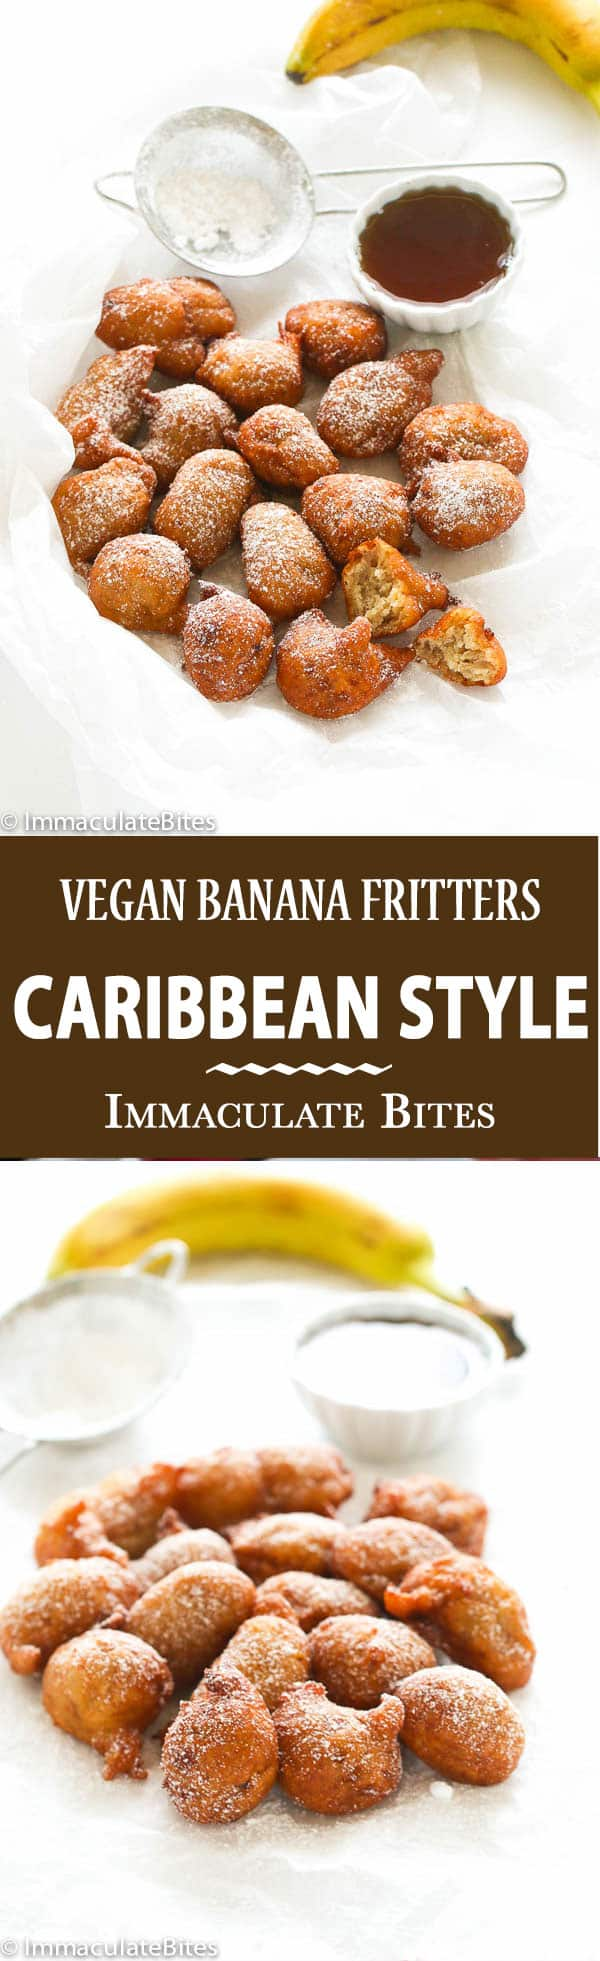 Make these melt in your mouth Vegan Caribbean Banana Fritters. And watch it disappear! Simple and Delicious!